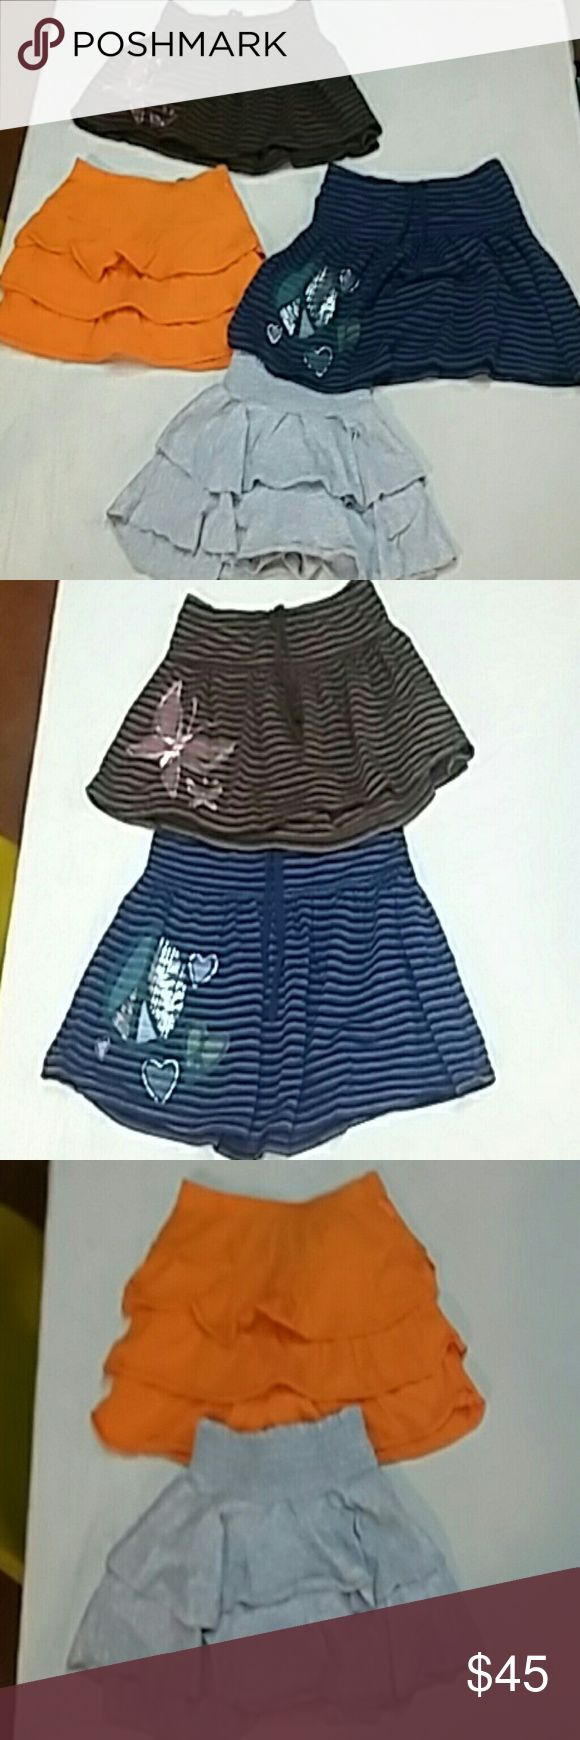 huge lot of girls size 7/8 summer clothes. lot includes: sz 7 mudd Jean shorts sz 8 So yellow short sz 8 blue plaid justice skirt blue shorts in picture are no longer included 2 children's Place tank tops 1 Gap kids tank top 2 plaid children's Place shorts size 8 orange children's Place skort size 8 2 old navy striped skirts size m 8 one gray size small 8 skort  So  1 med 8 old navy pink t shirt 1 med 8 turquoise with hearts t shirt  comes from a smoke free home. these are used, we have…